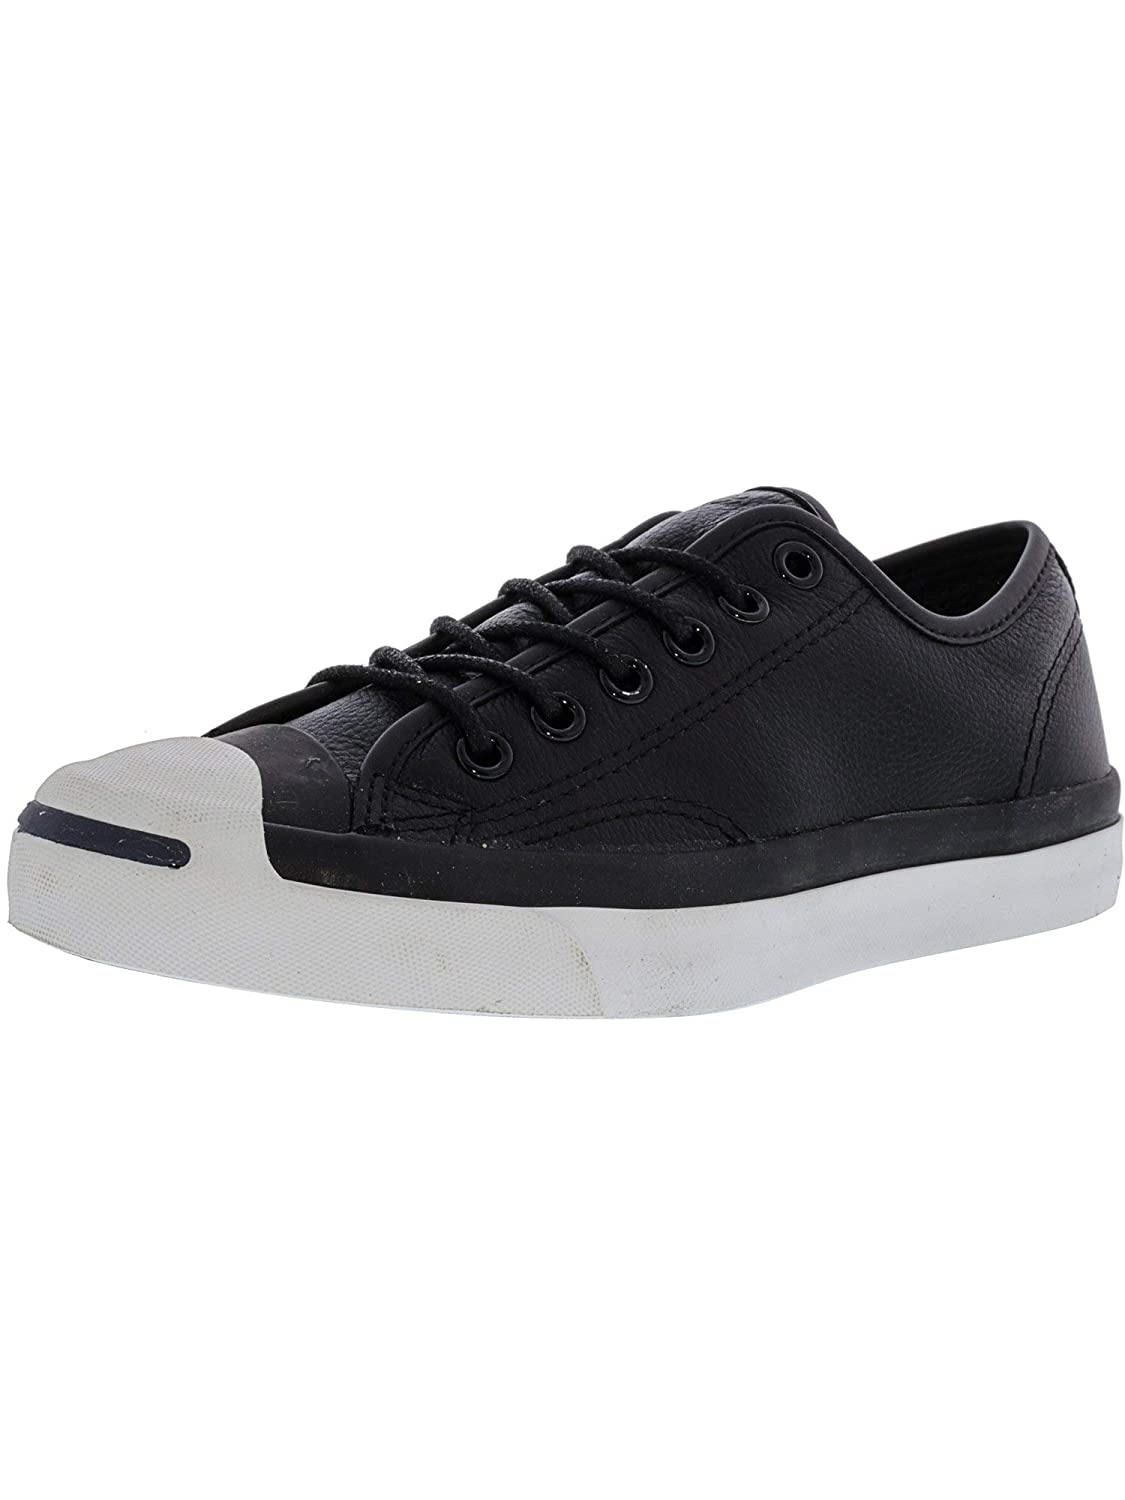 Converse Men's Jack Purcell Ox schwarz Leather 3 M